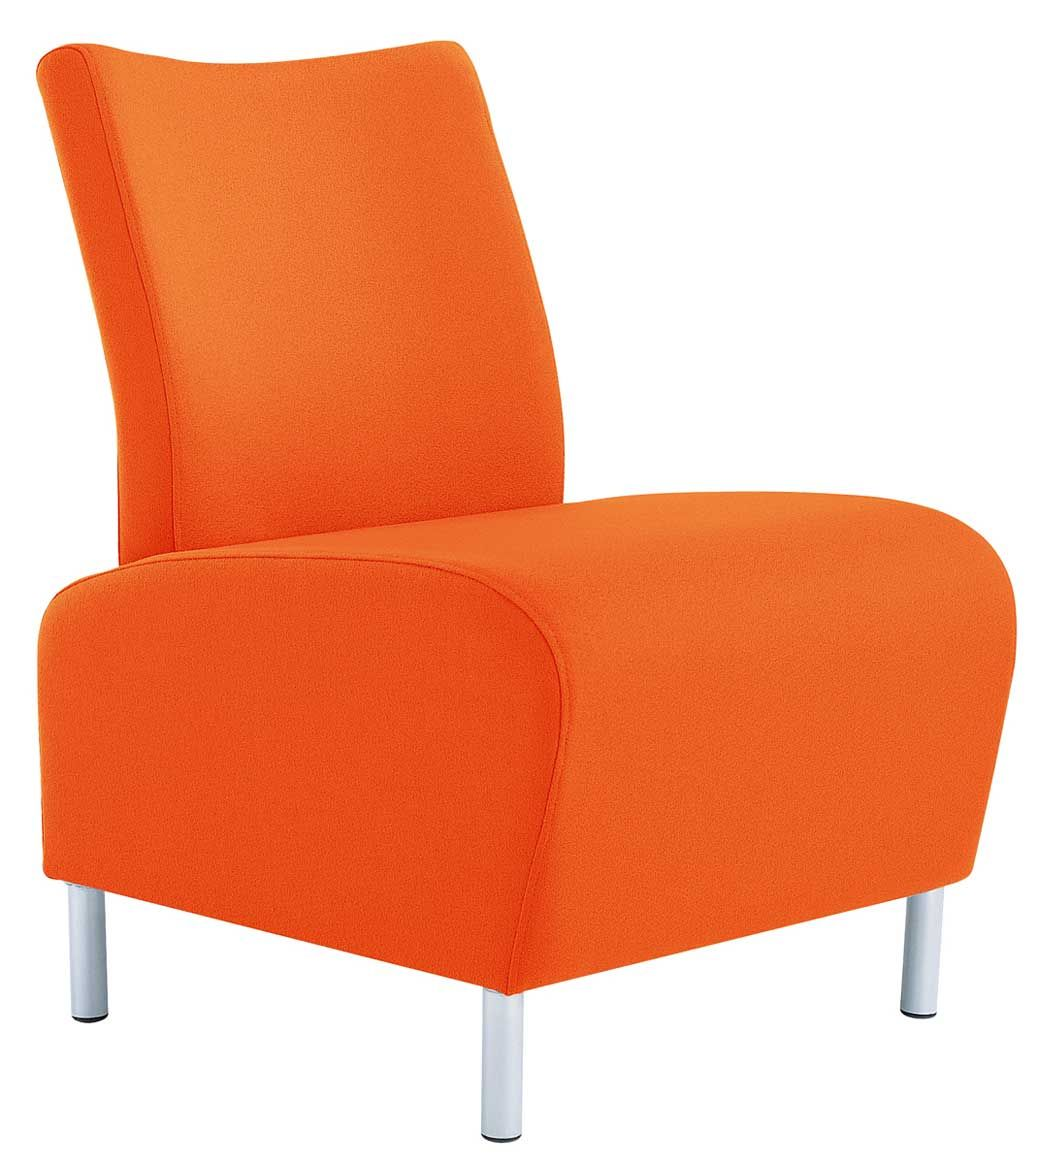 Affordable Modern Office Furniture: Modern Orange Reception Office Chairs